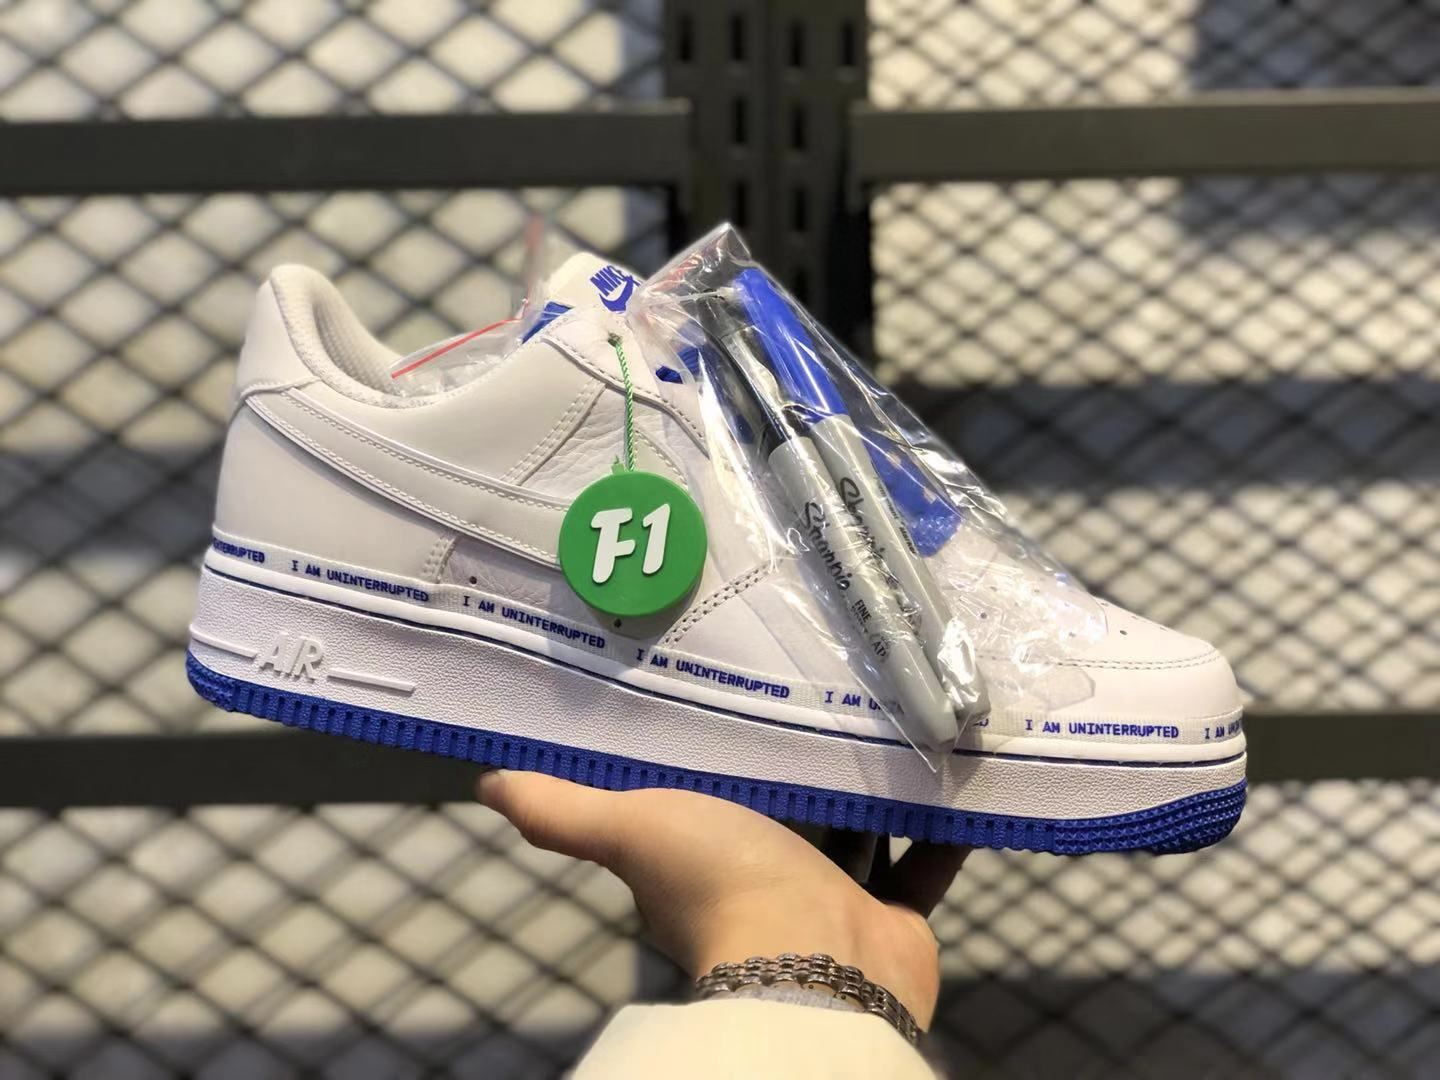 Uninterrupted x Nike Air Force 1'07 White/Black/Racer Blue For Sale CQ0494-100